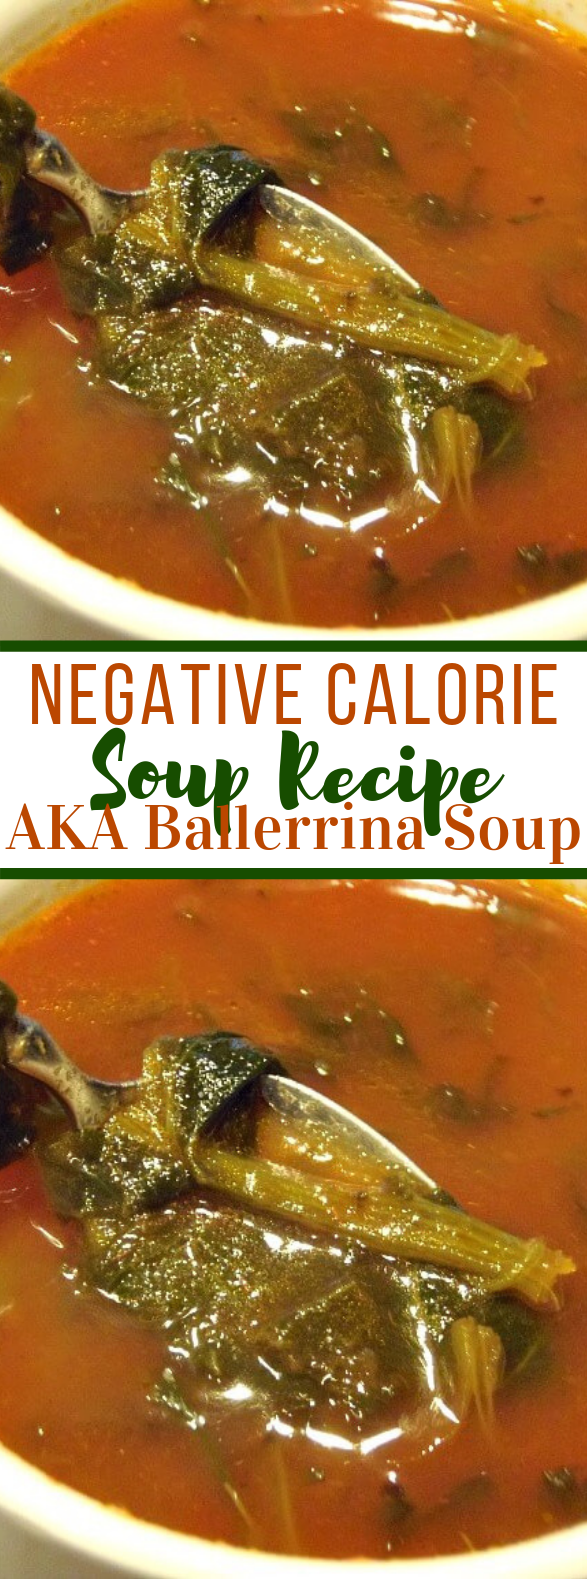 Negative Calorie Soup Recipe aka Ballerina Soup #diet #weightloss